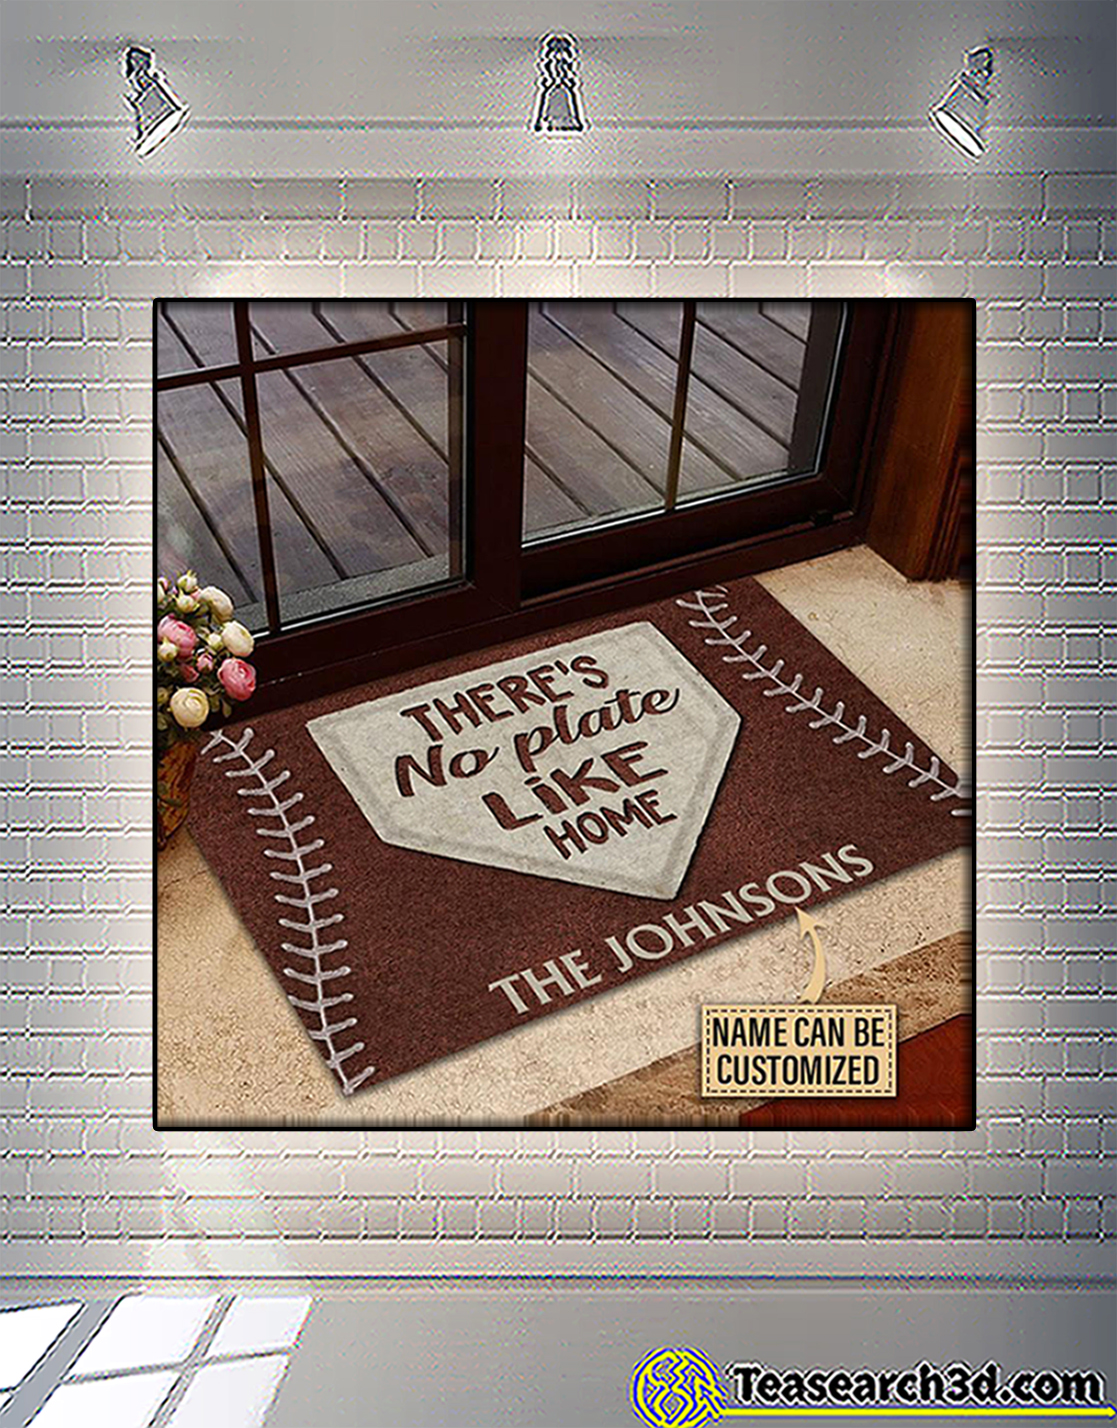 Personalized custom name baseball there's no plate like home doormat